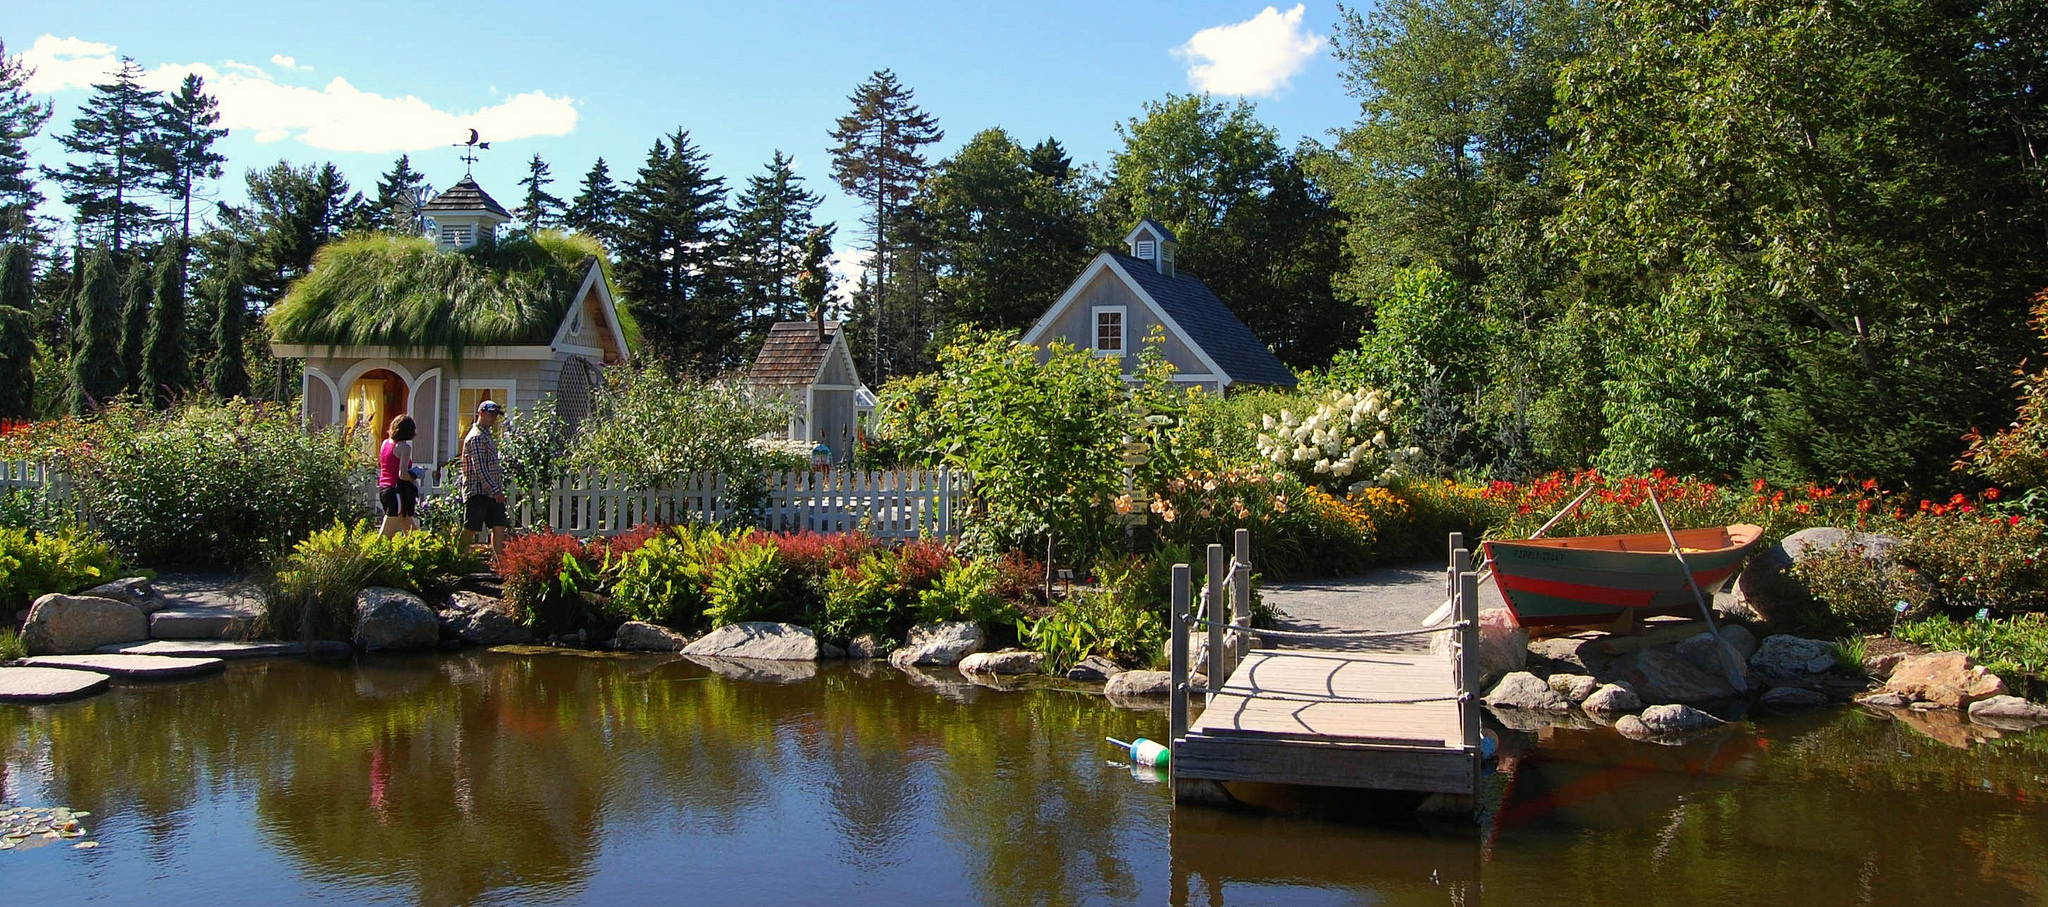 15 things to do in maine this summer